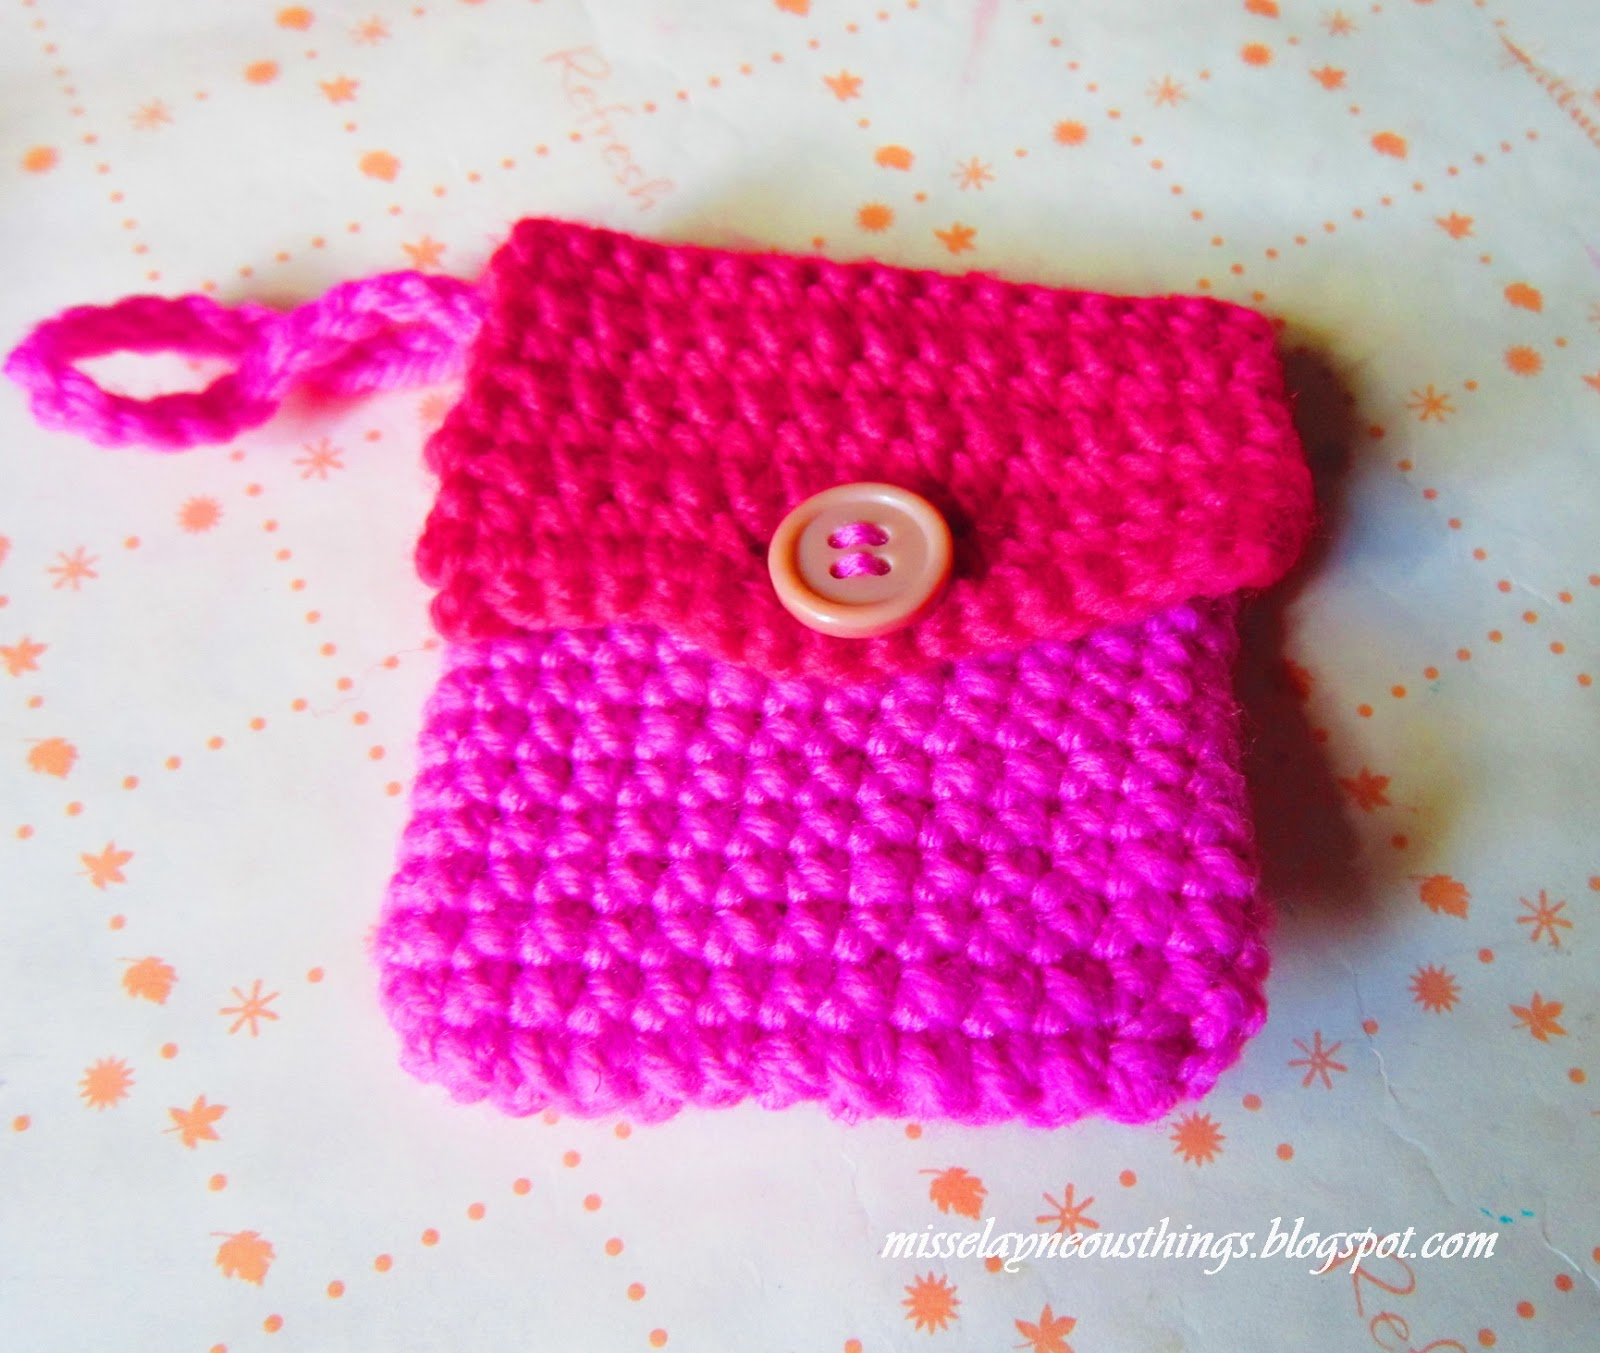 A blog about misselayneous things free crochet coin purse pattern free crochet coin purse pattern bankloansurffo Gallery